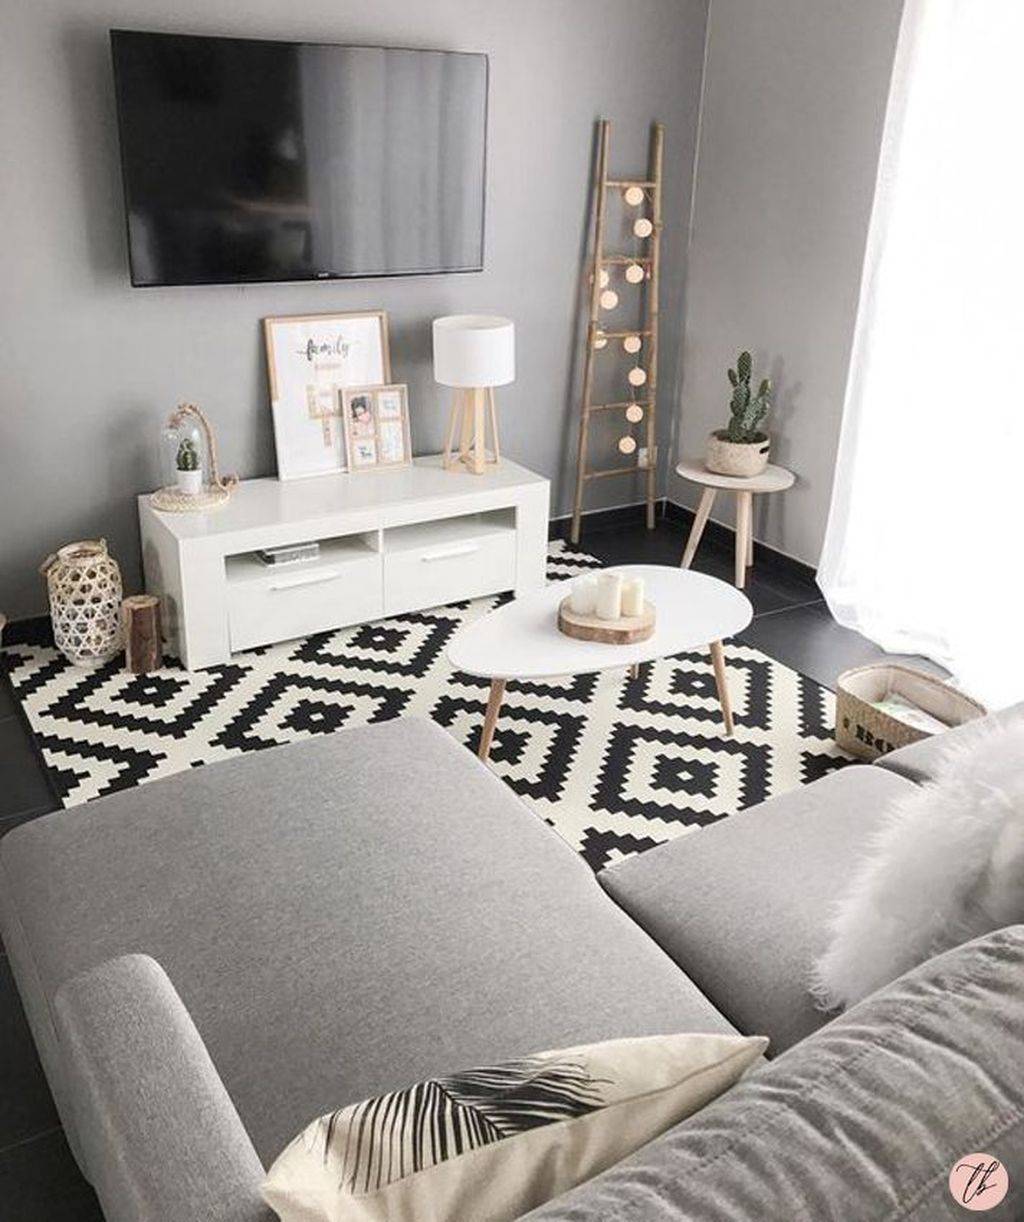 20 Modern Apartment Decorating Ideas On A Budget Living Room Decor Apartment Small Apartment Living Room Small Apartment Living